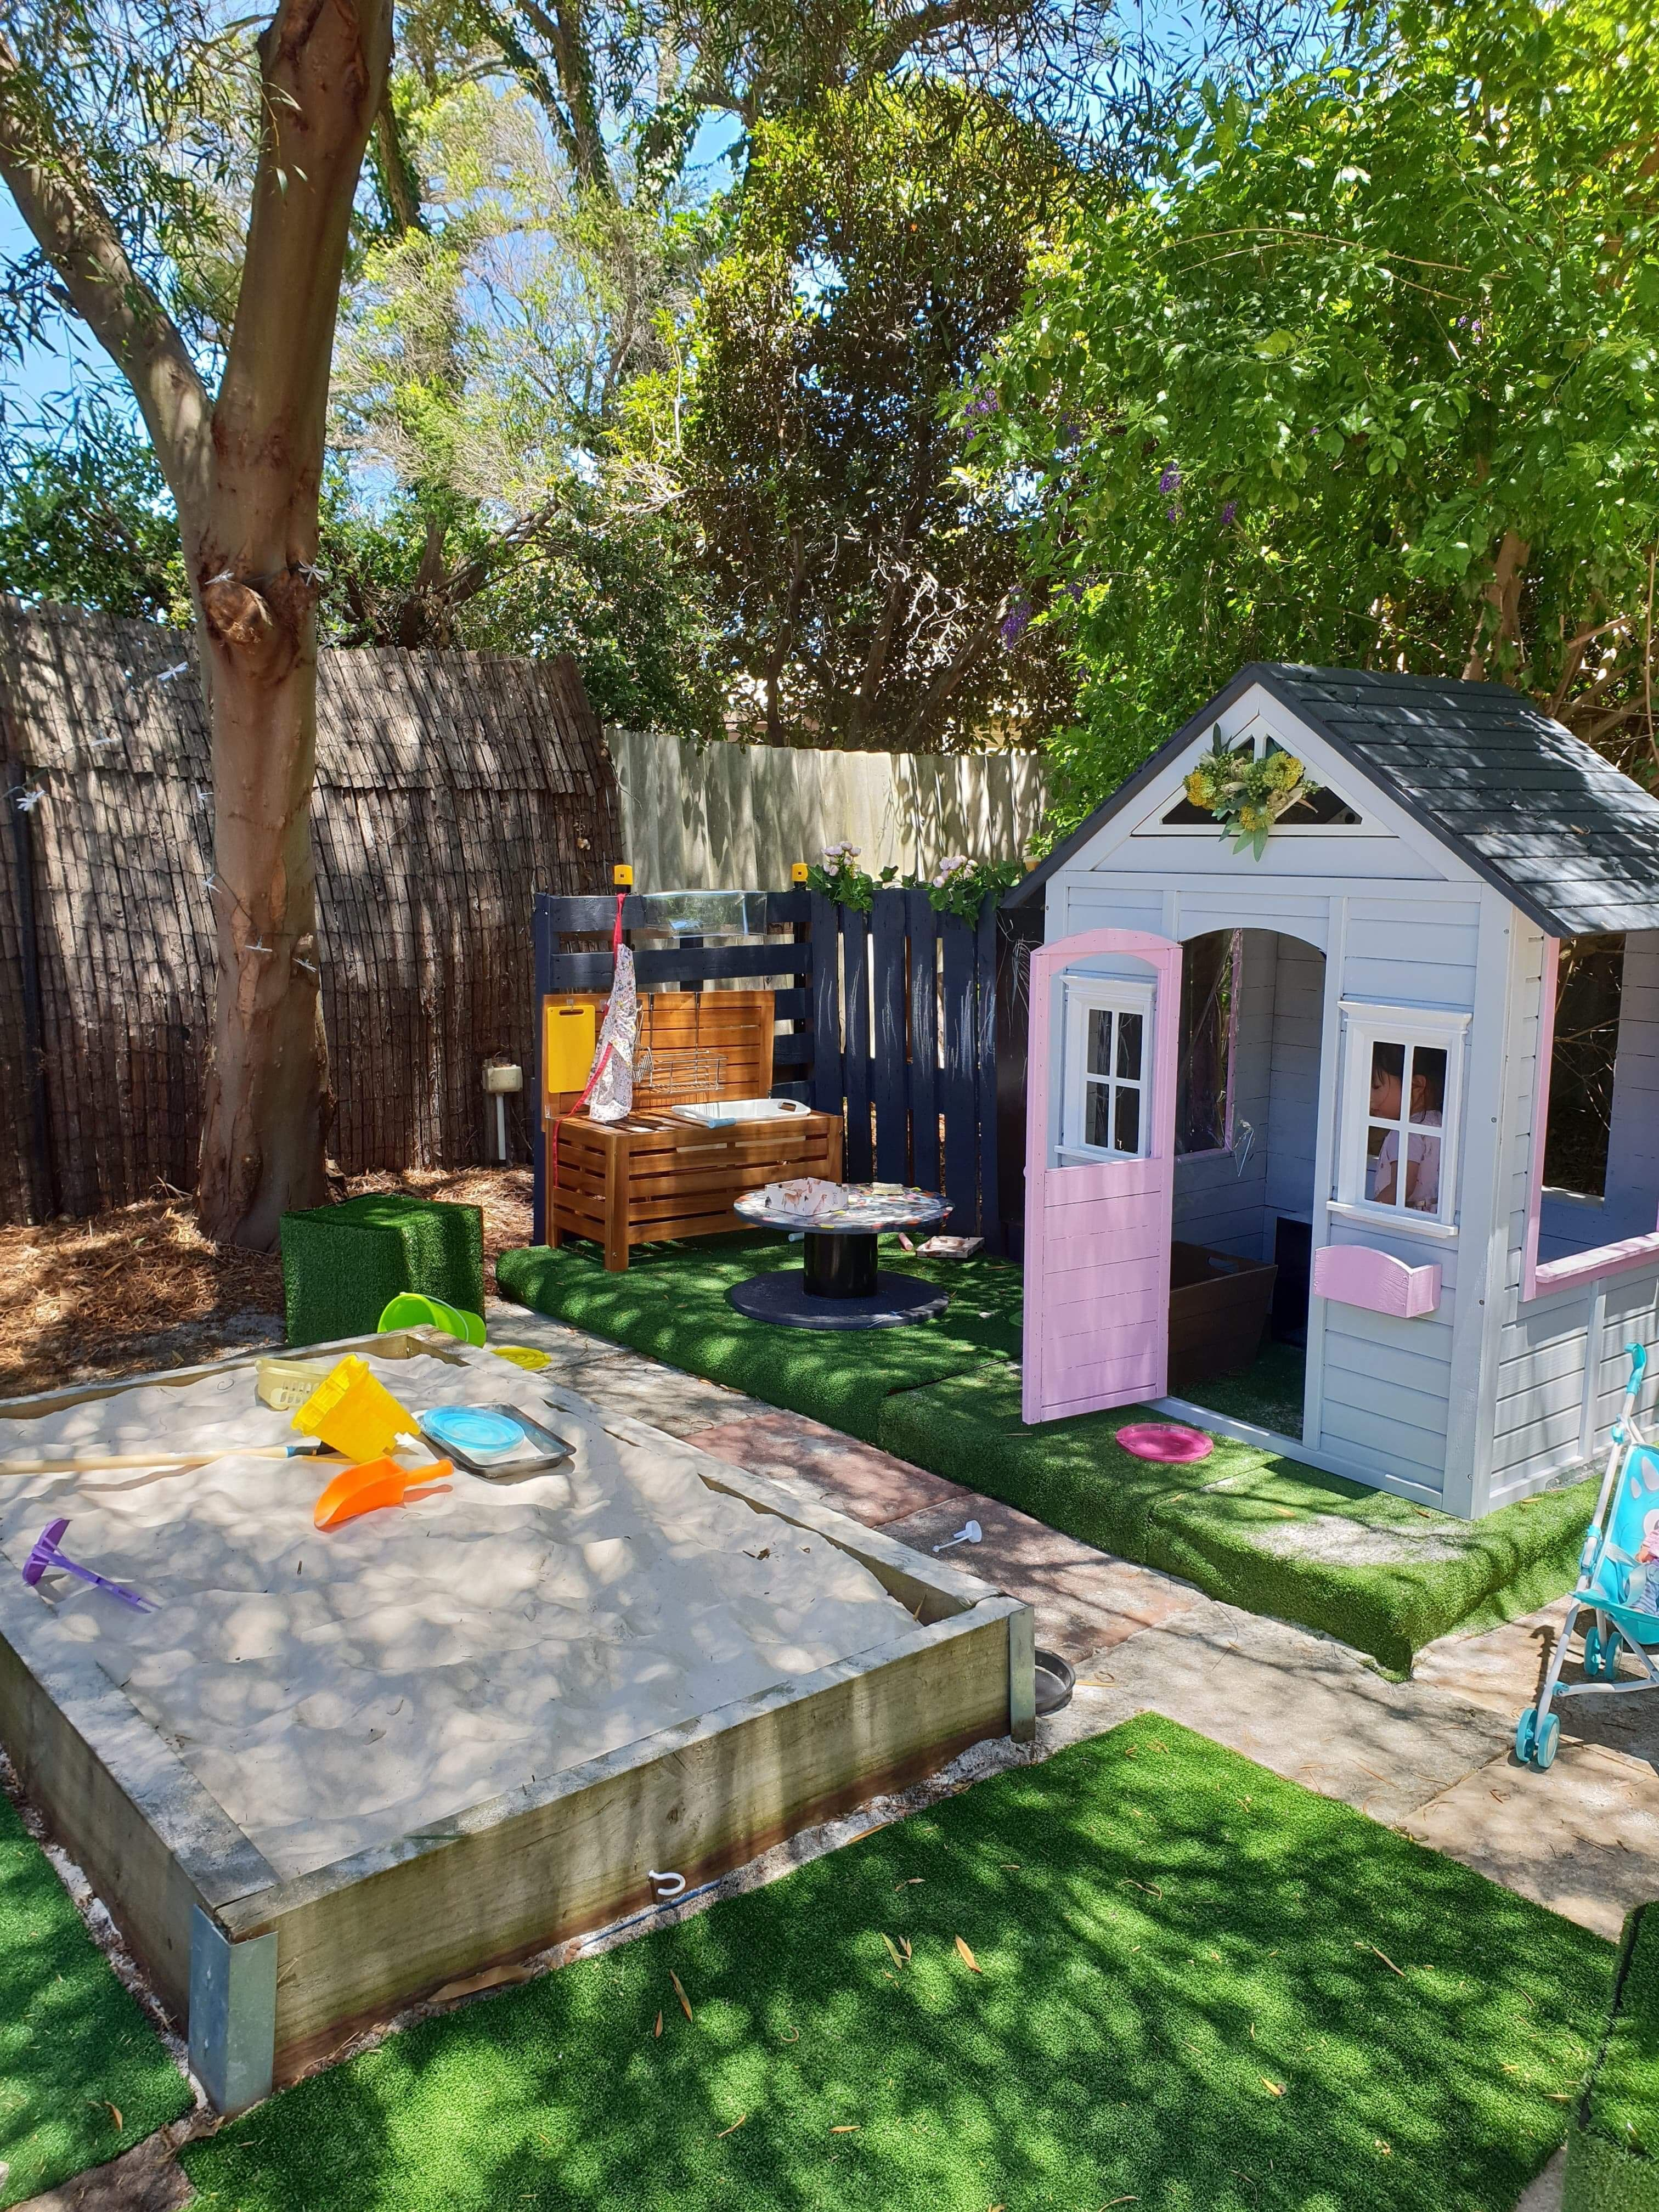 Cubby House And Sandpit For My 2 Years Old Kmart Cubby